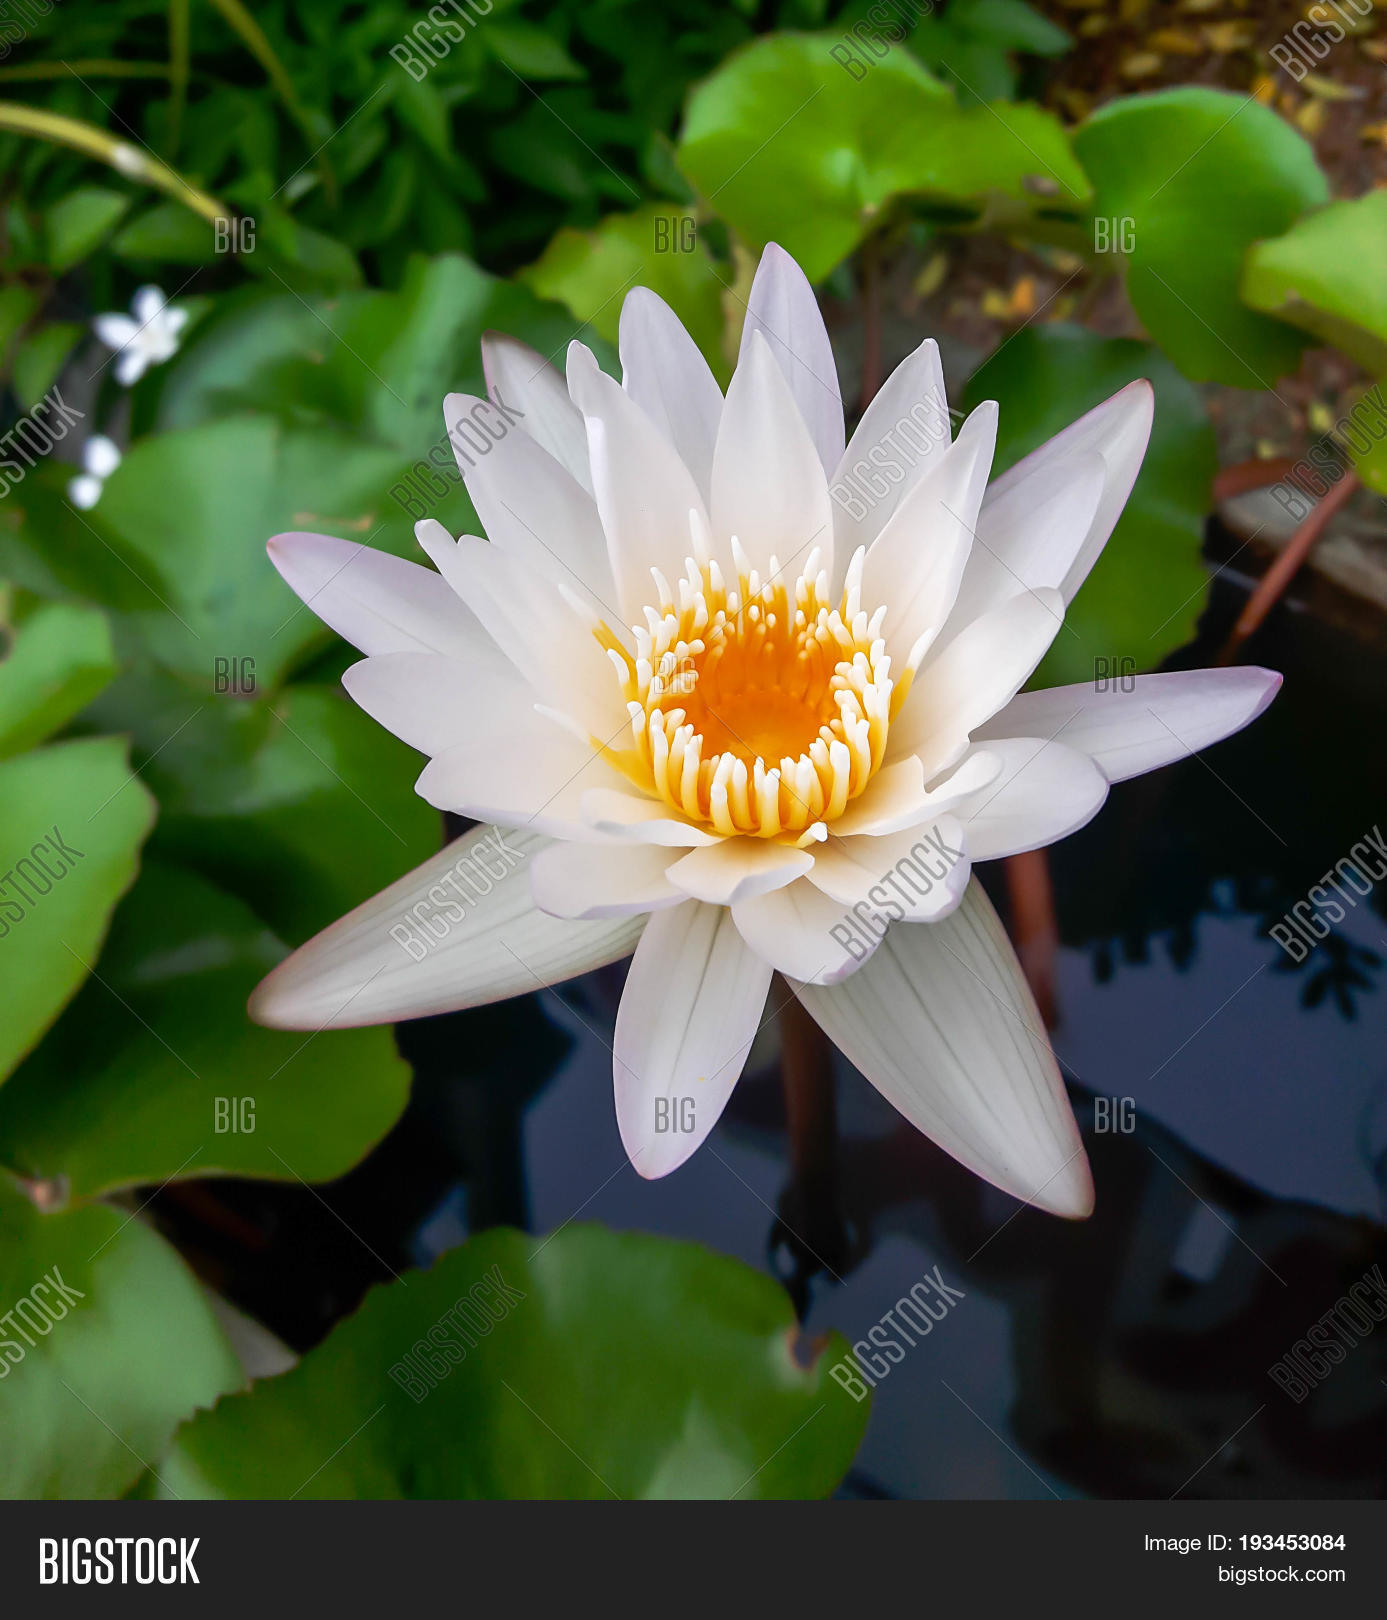 Beautiful white lotus image photo free trial bigstock the beautiful white lotus flower or water lily reflection with the water in the pond izmirmasajfo